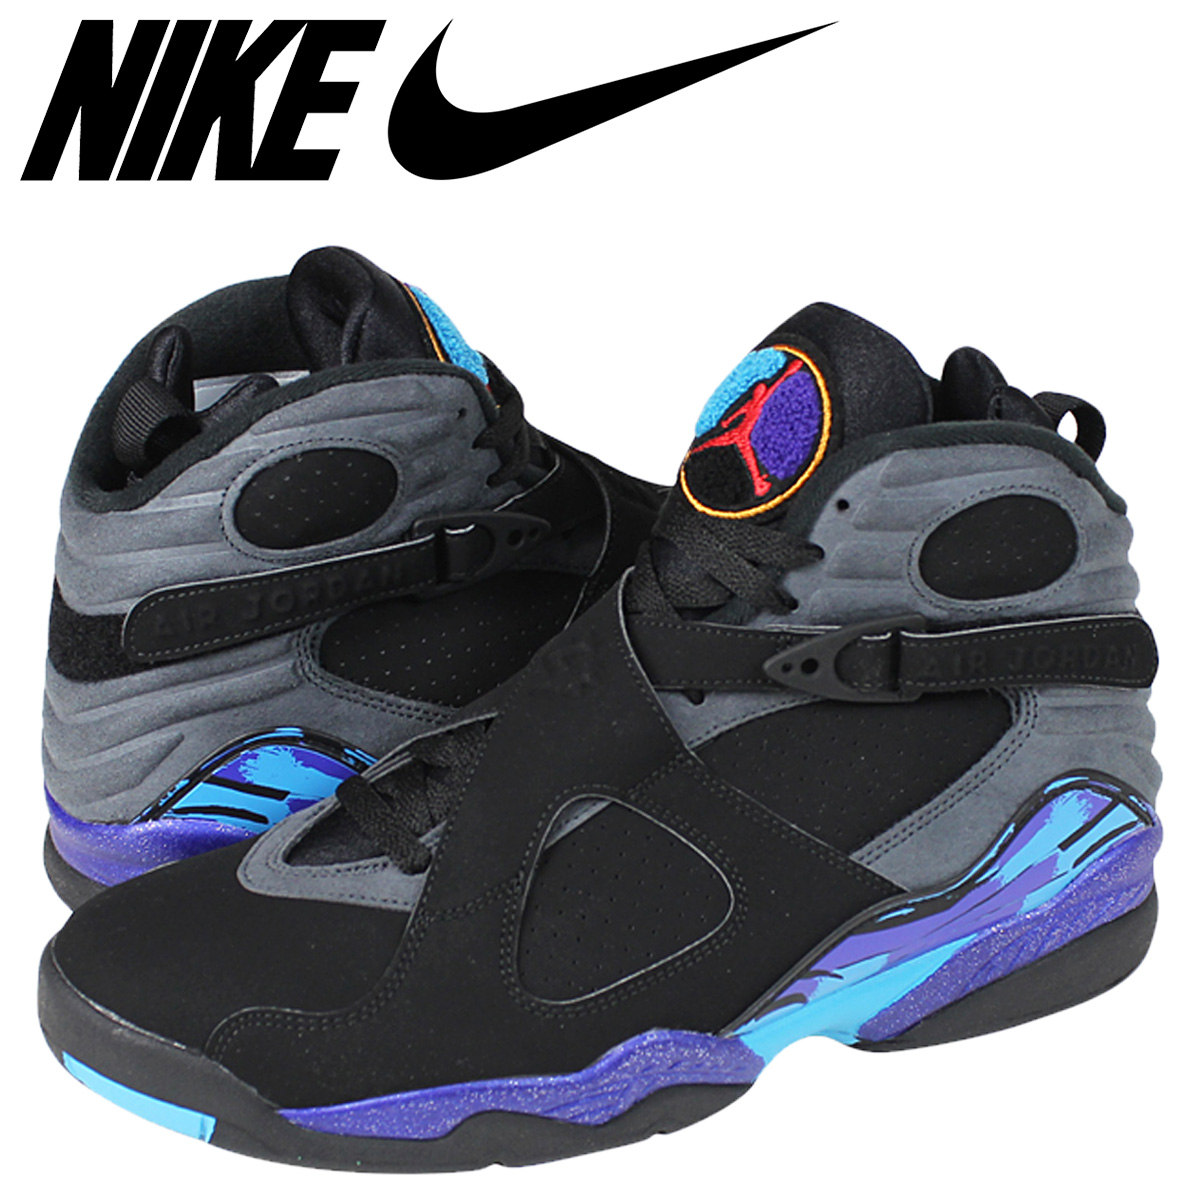 Nike NIKE Air Jordan sneakers AIR JORDAN 8 RETRO AQUA Air Jordan retro 8 Aqua 305381-025 black mens